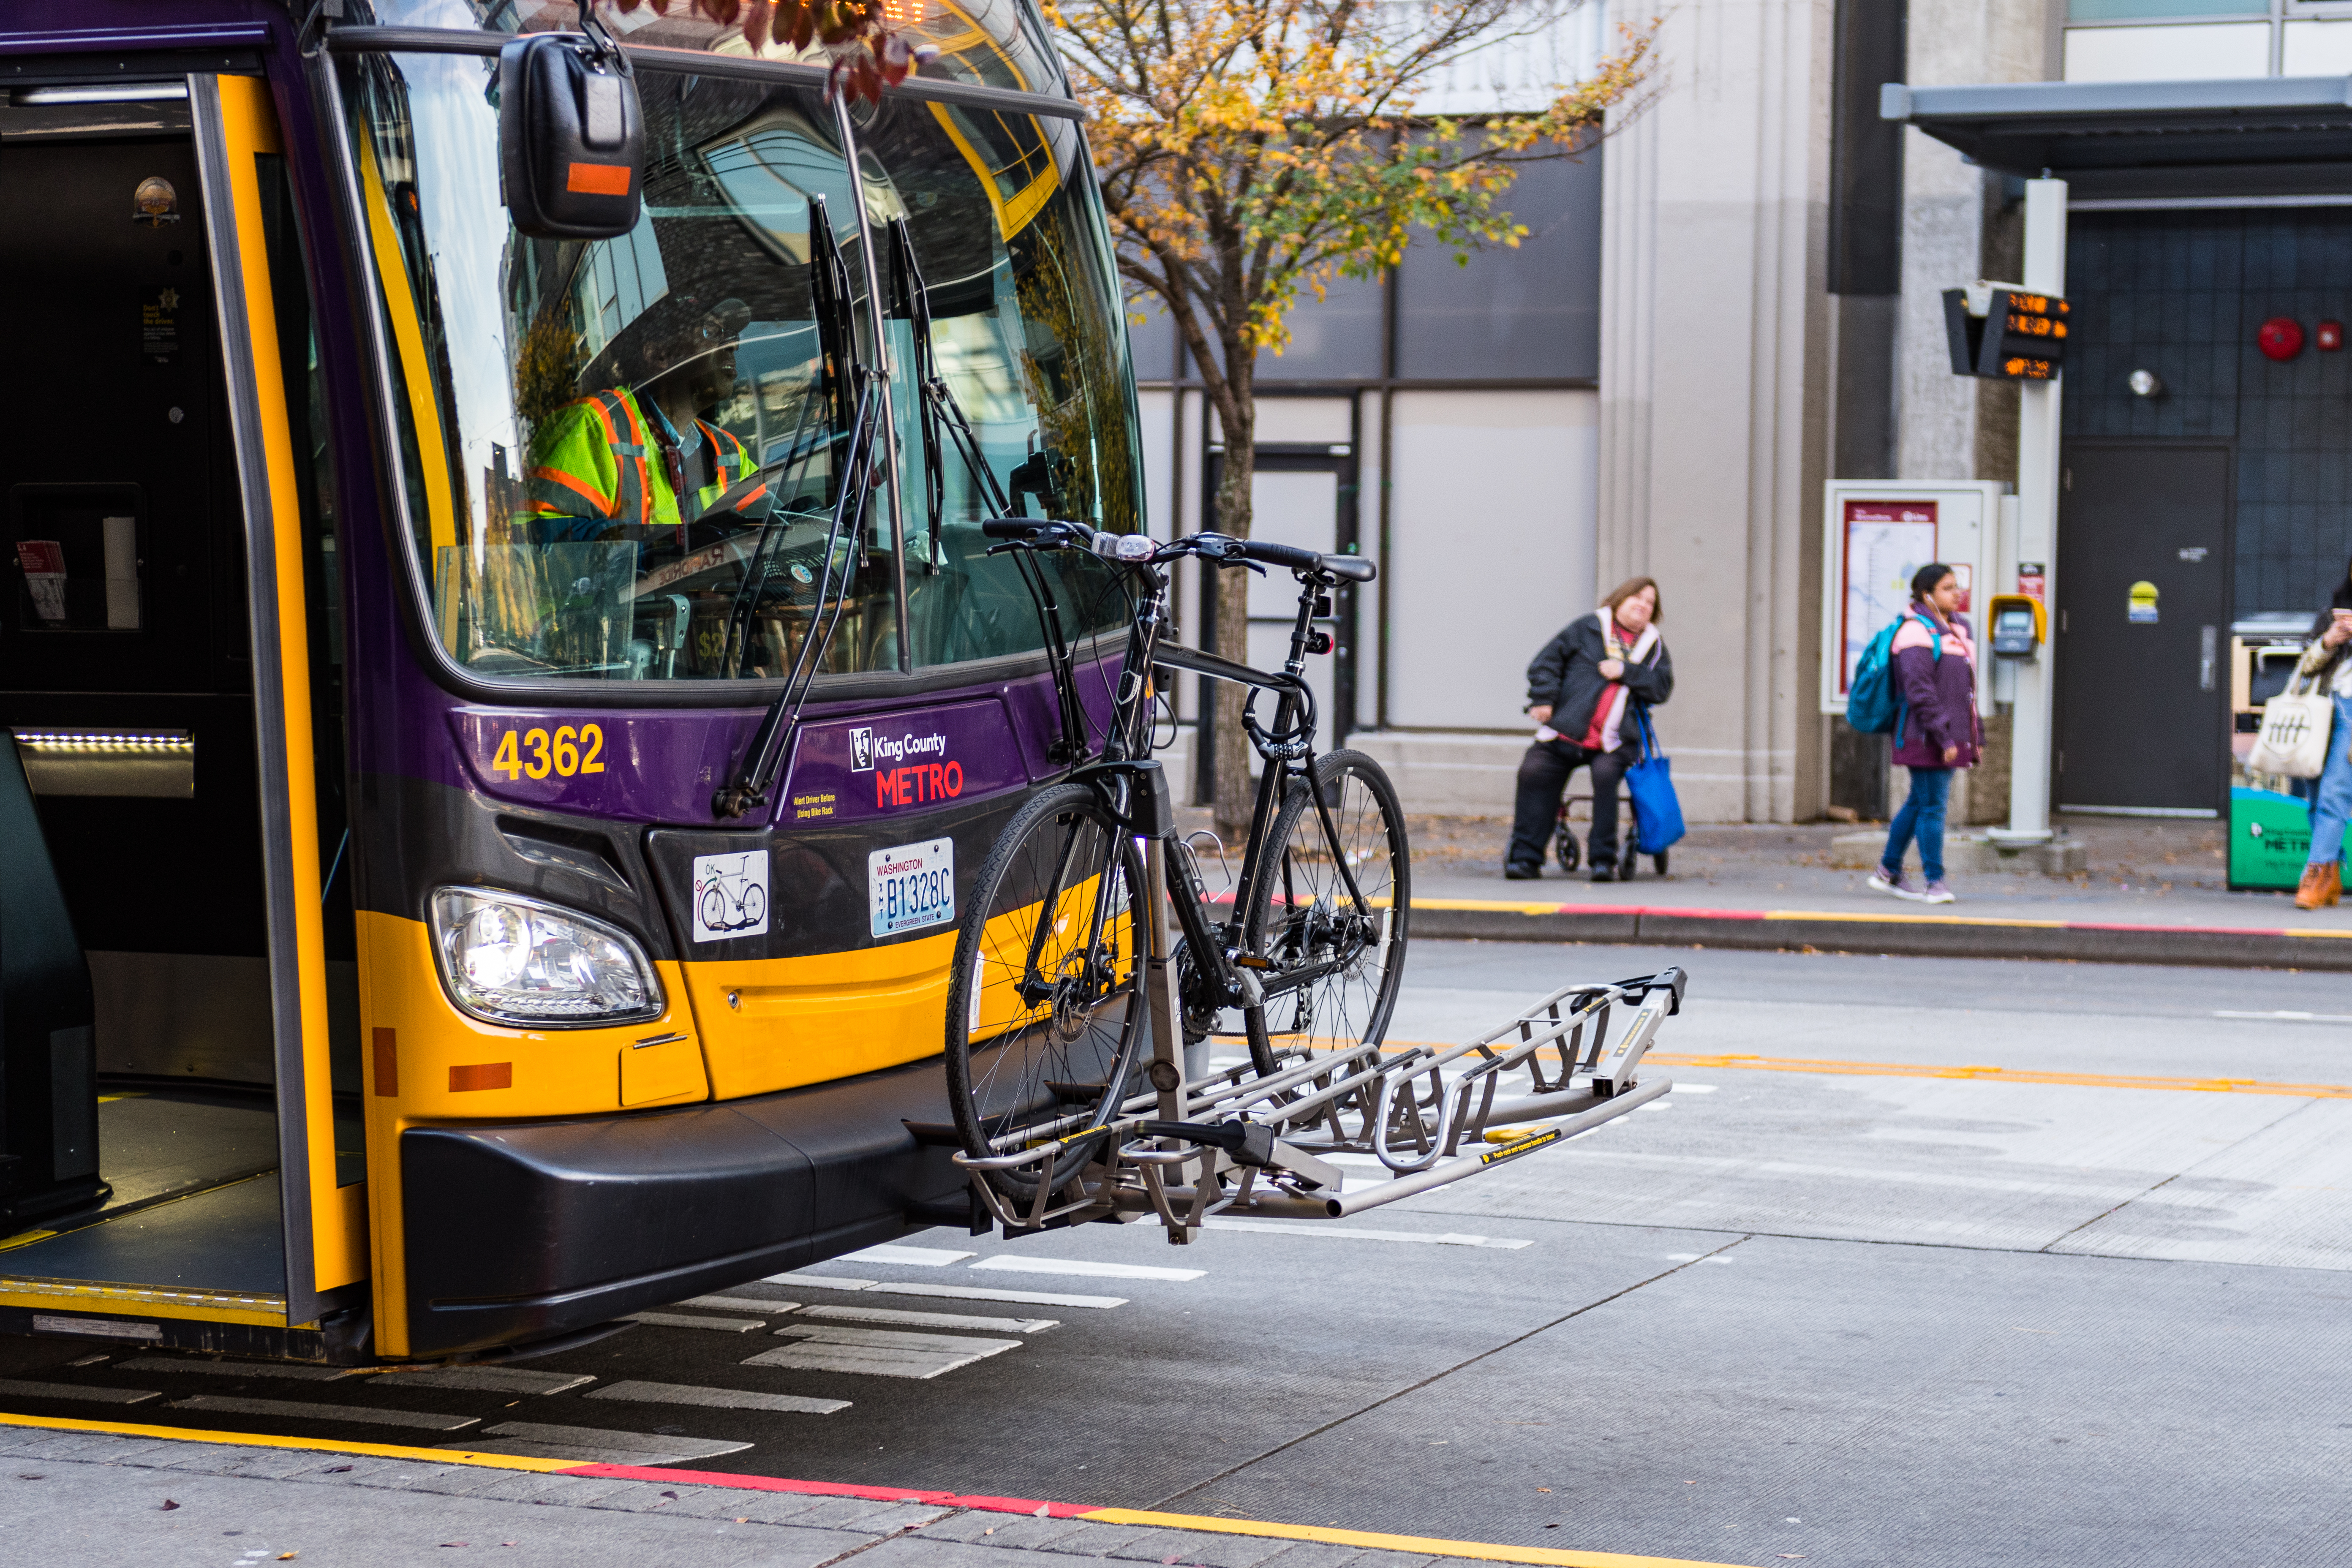 A bus with a bike mounted on the front.